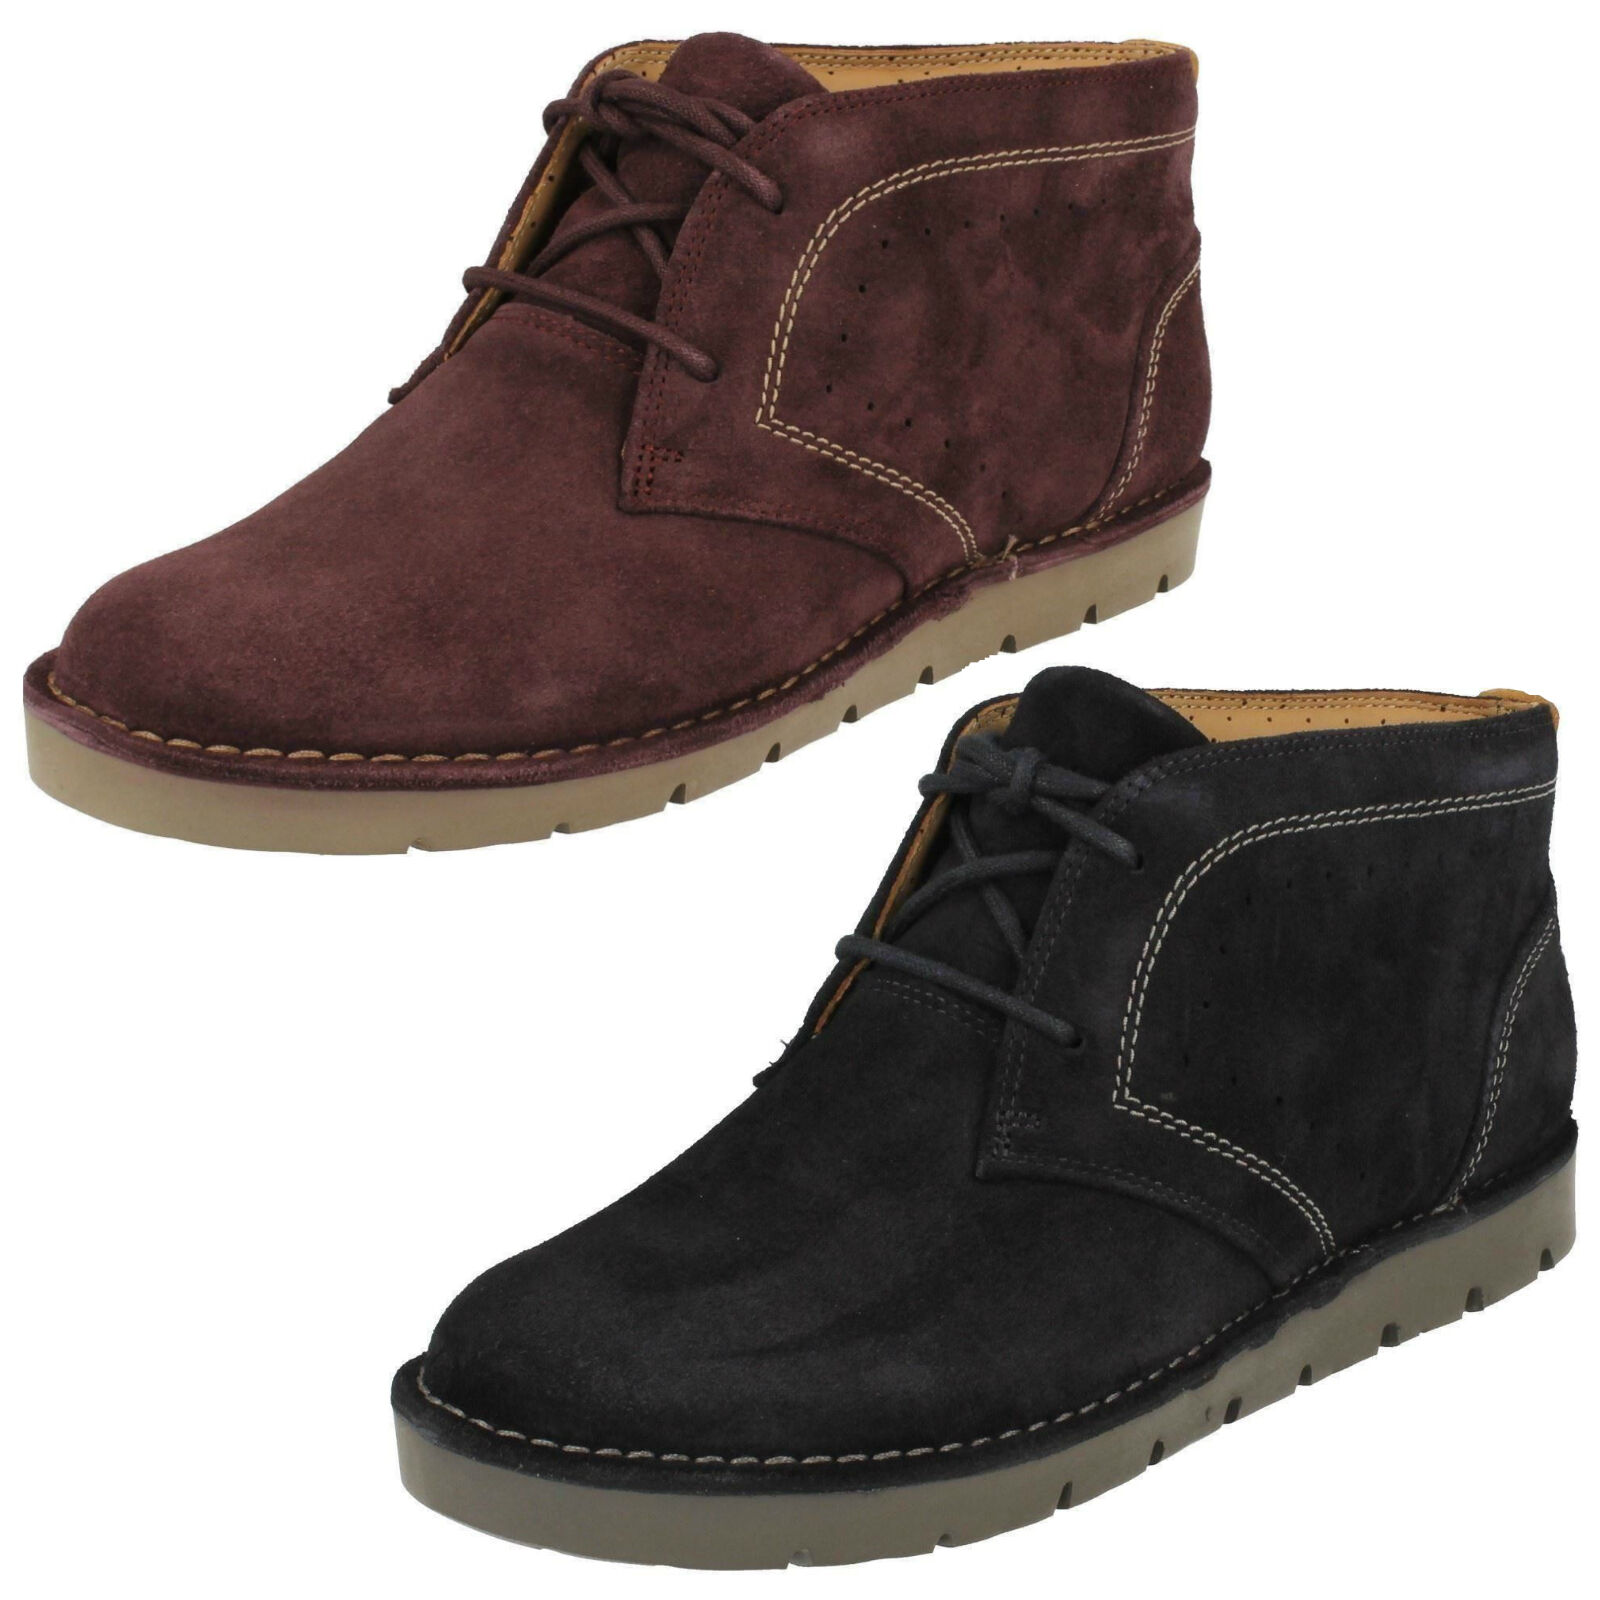 Ladies Clarks Unstructured Un Astin Suede Leather Casual Lace Up Ankle Boots